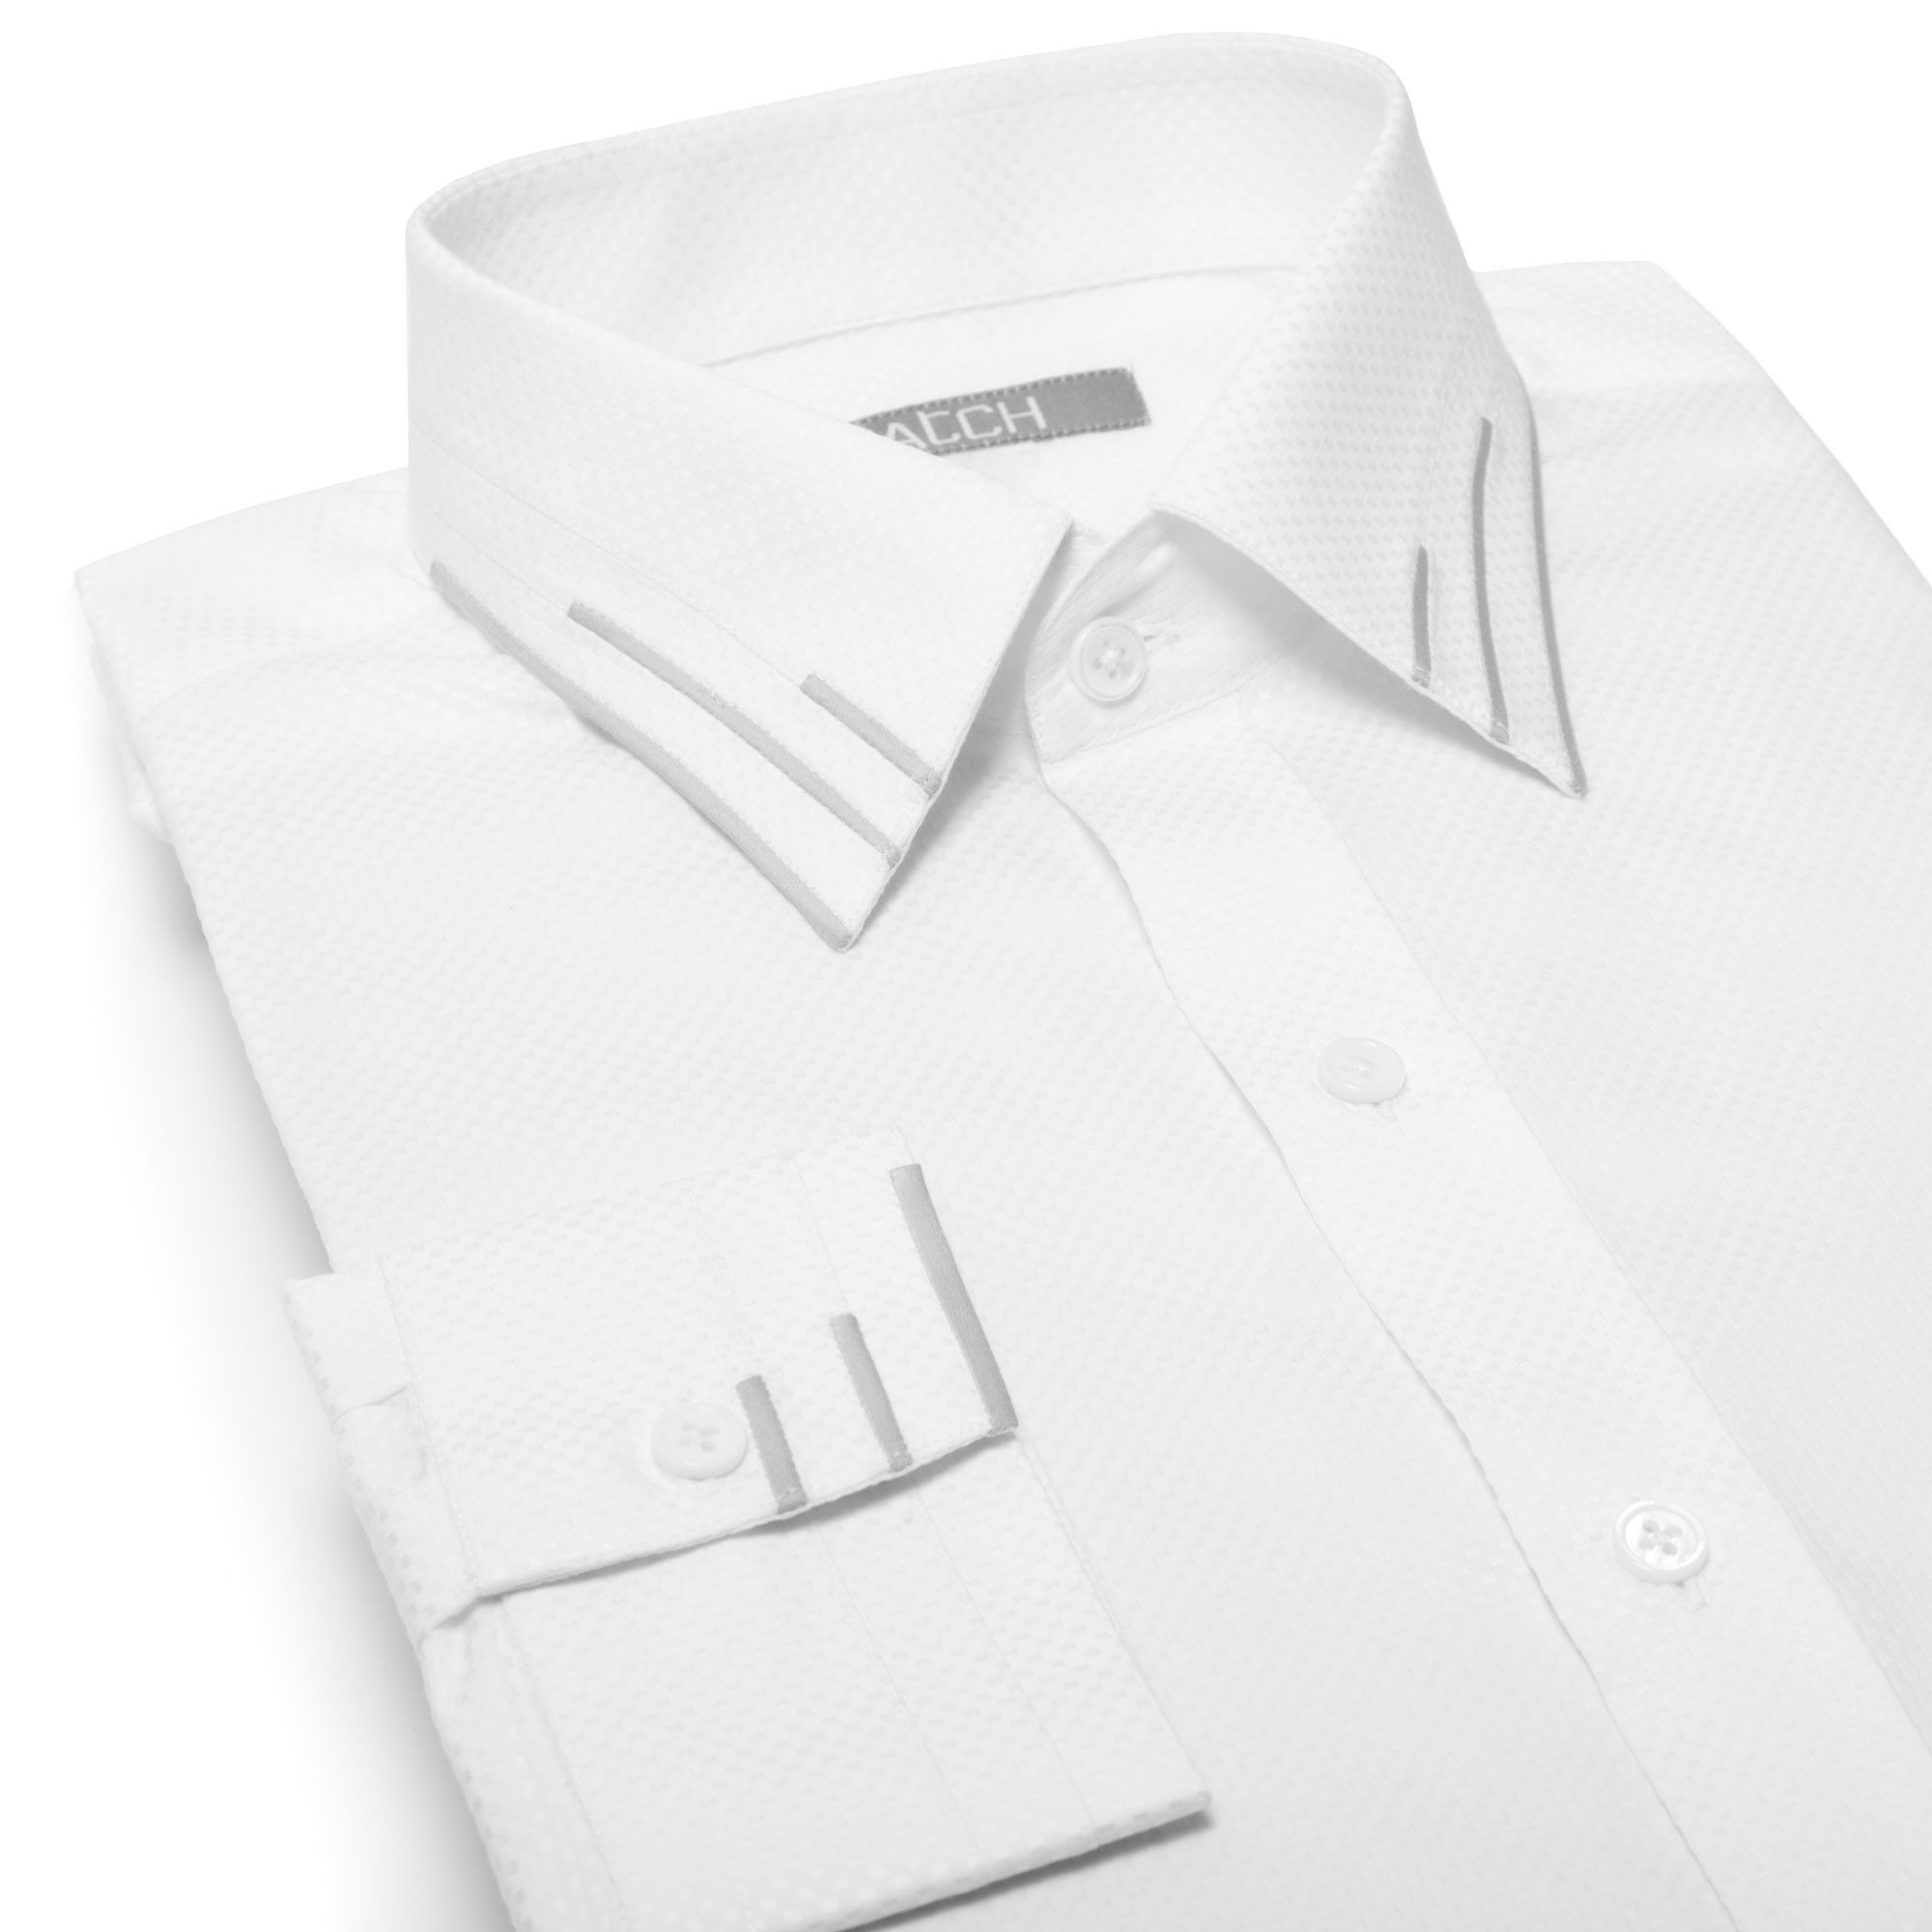 Levels White Shirt With Grey Collar And Cuff Details Mens